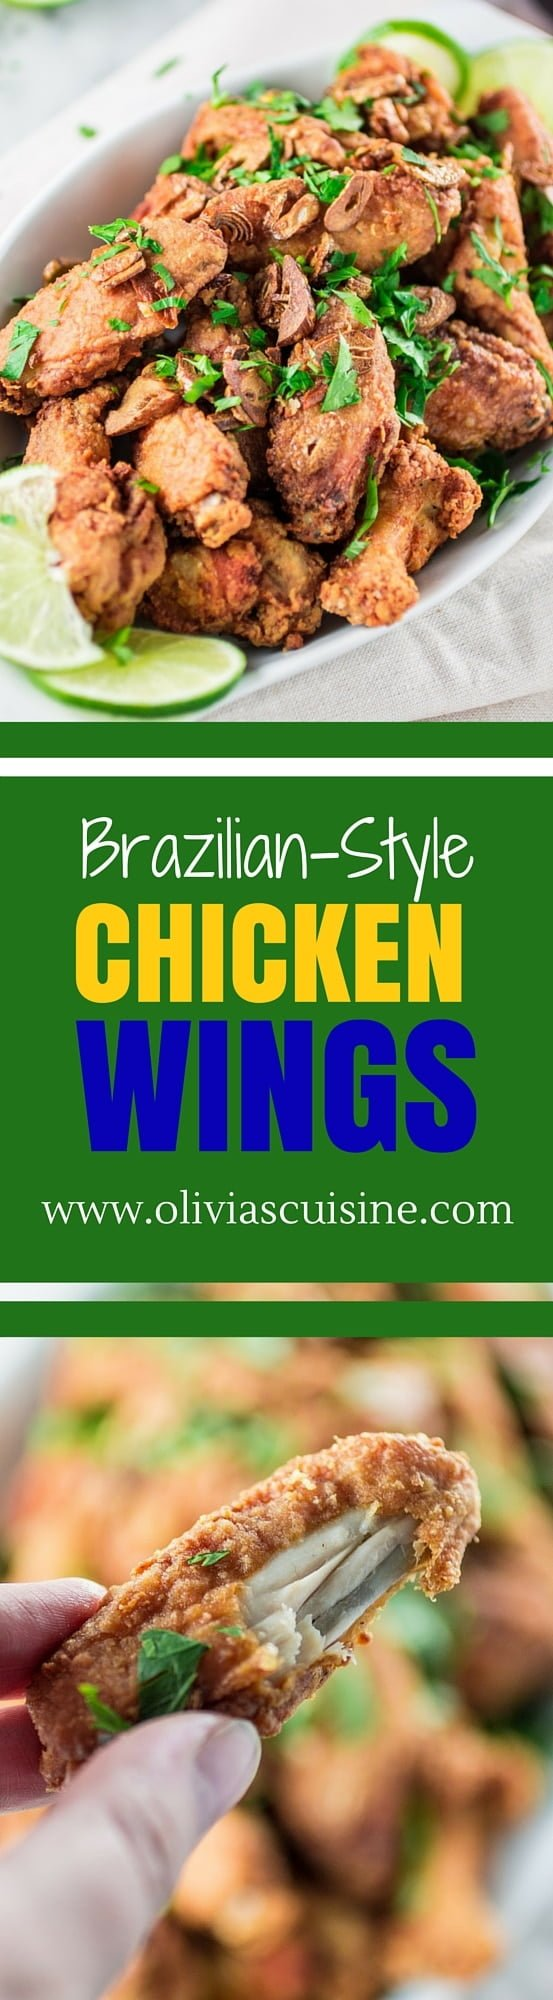 "Brazilian Style Chicken Wings | www.oliviascuisine.com | Crunchy chicken wings, called ""Frango a Passarinho in Portuguese, that are so full of garlic and lime flavor. It is the most perfect game day food!"